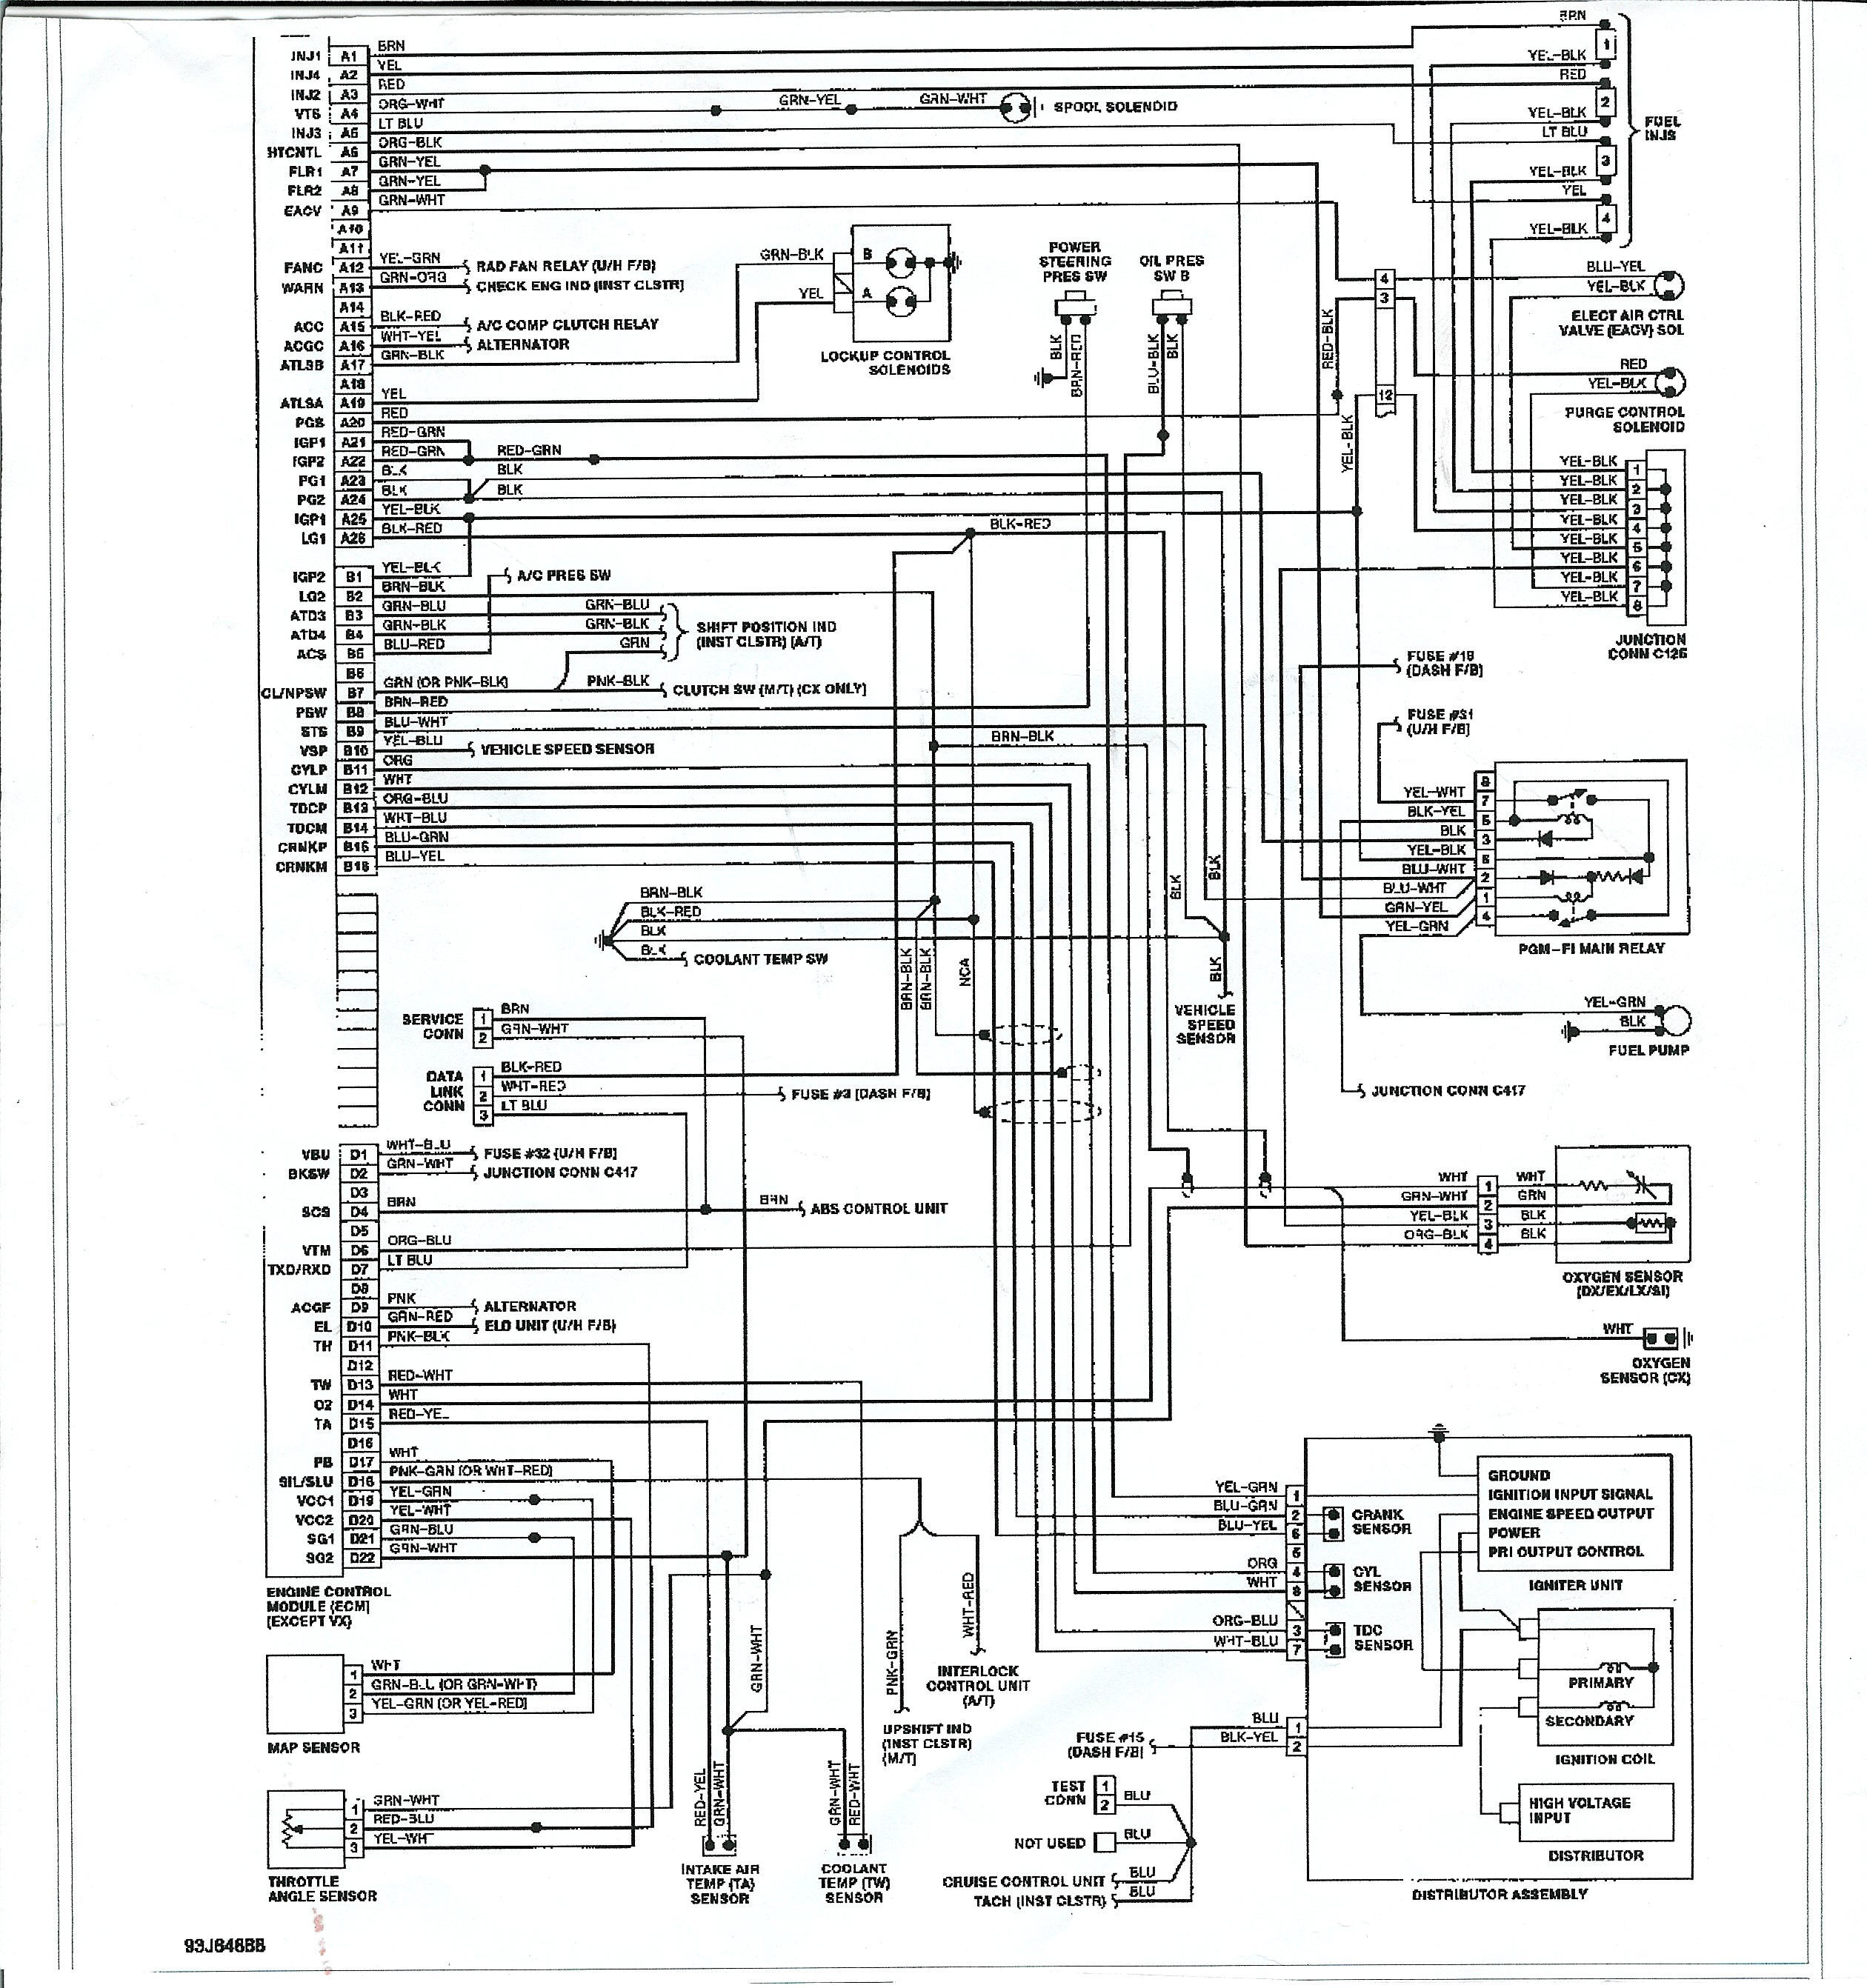 Diagram Of Honda Civic Engine 1998 Honda Civic Engine Diagram Vw  Transporter Wiring Diagram 95 Of